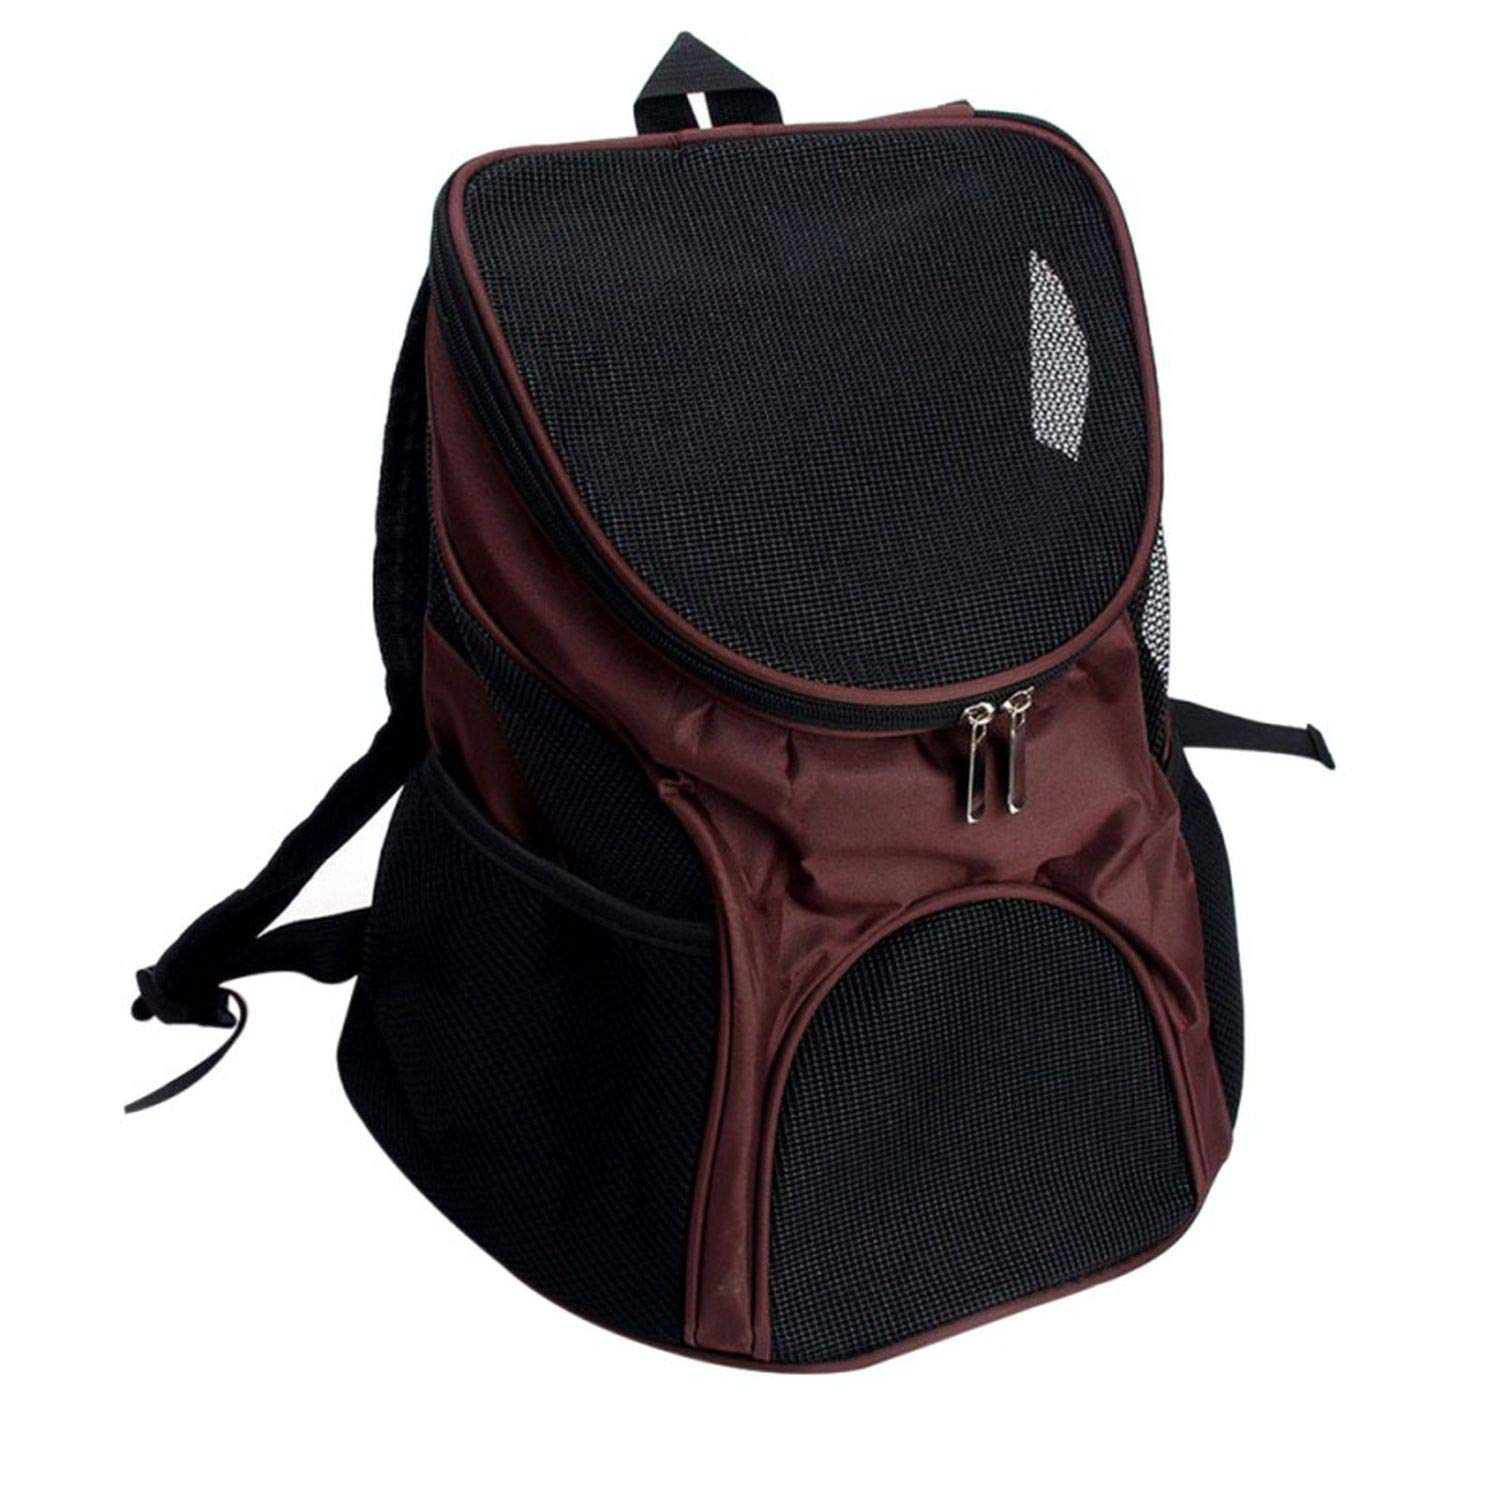 222a915f712b Amazon.com : LIAOYLY Portable Breathable Grid Bag Pet Out Carrying ...